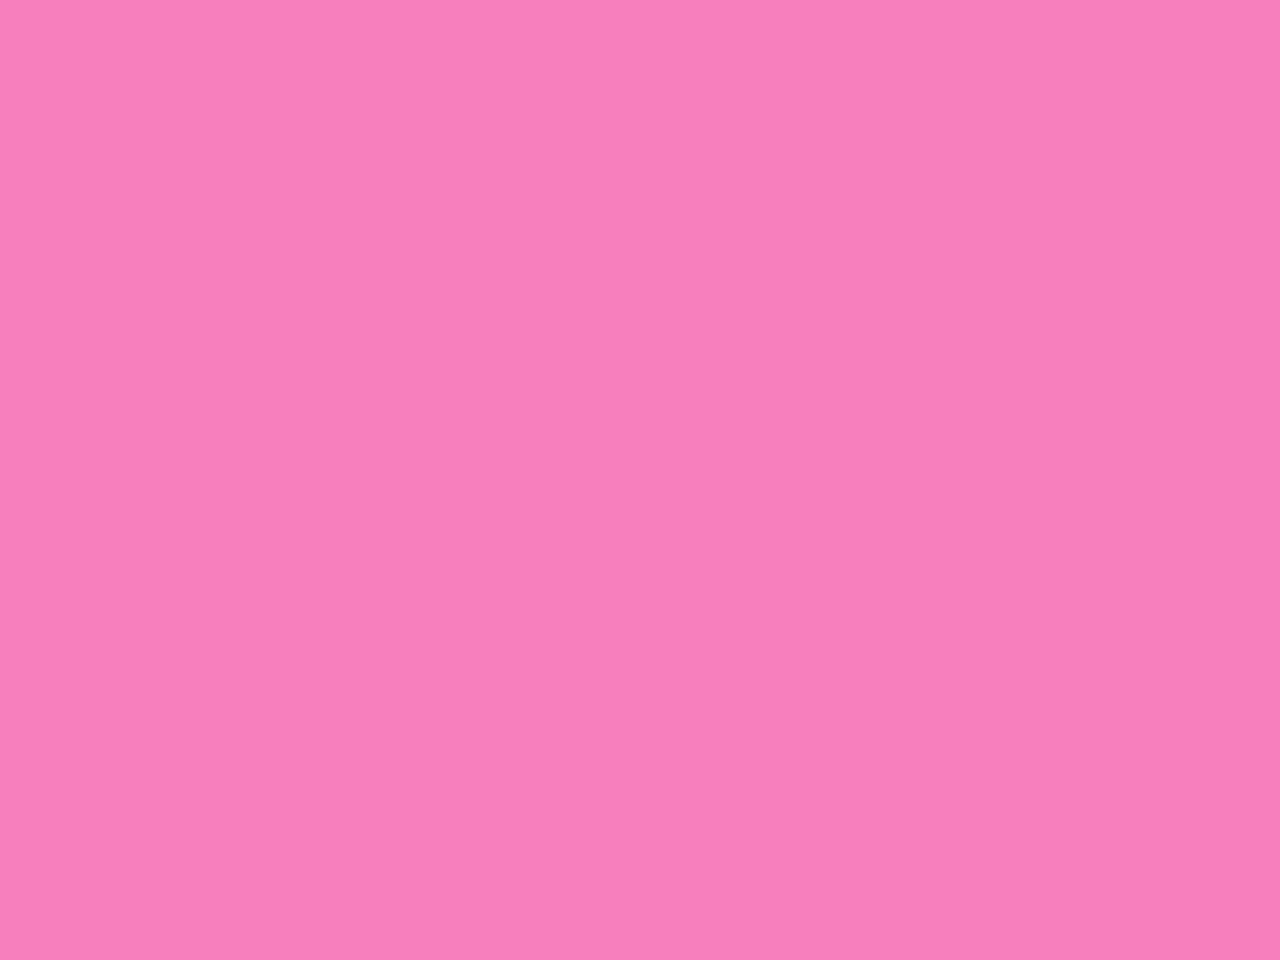 1280x960 Persian Pink Solid Color Background